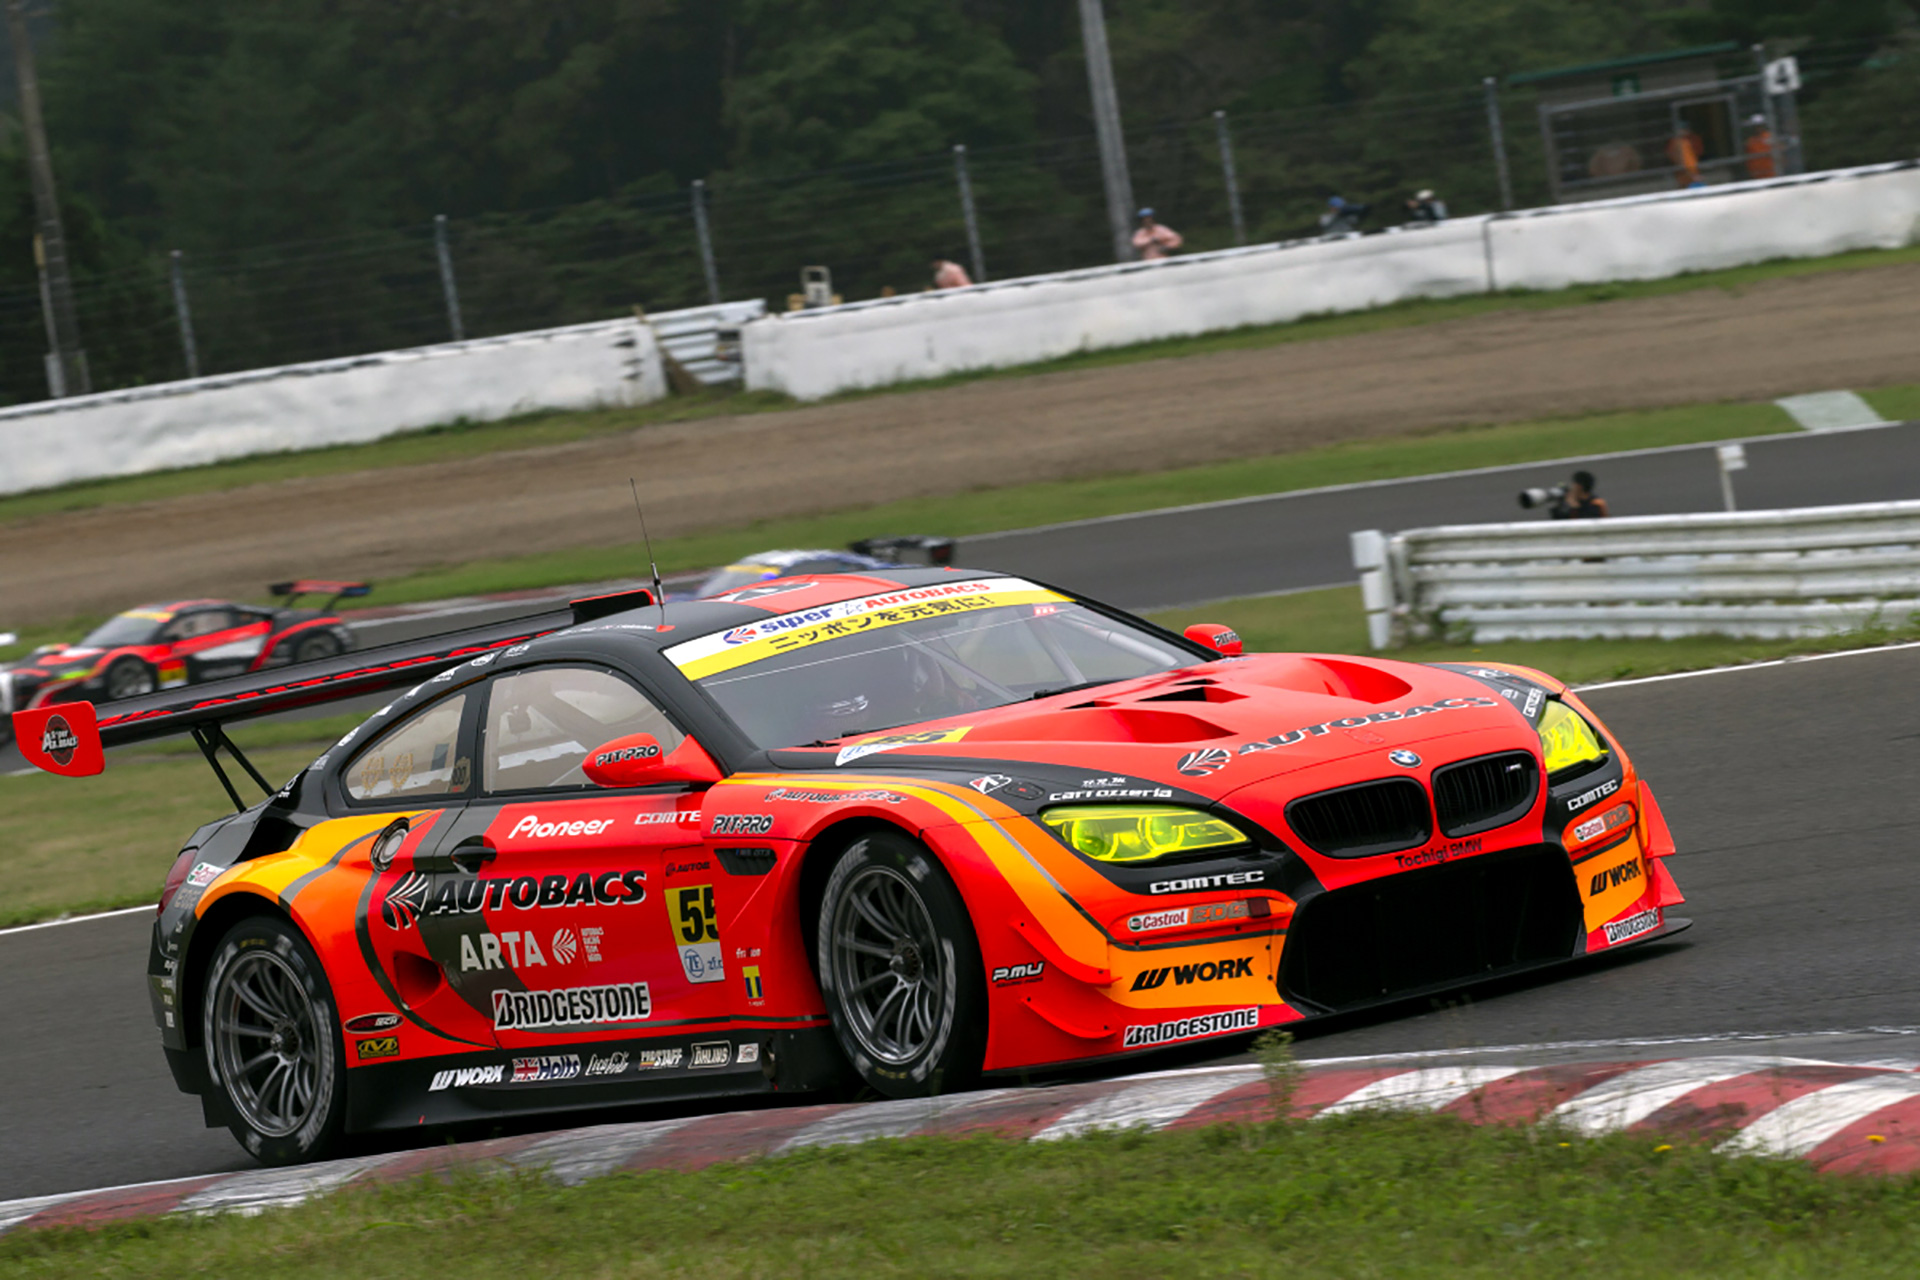 ARTA team-mates take top 10 result despite qualifying P23 on grid.